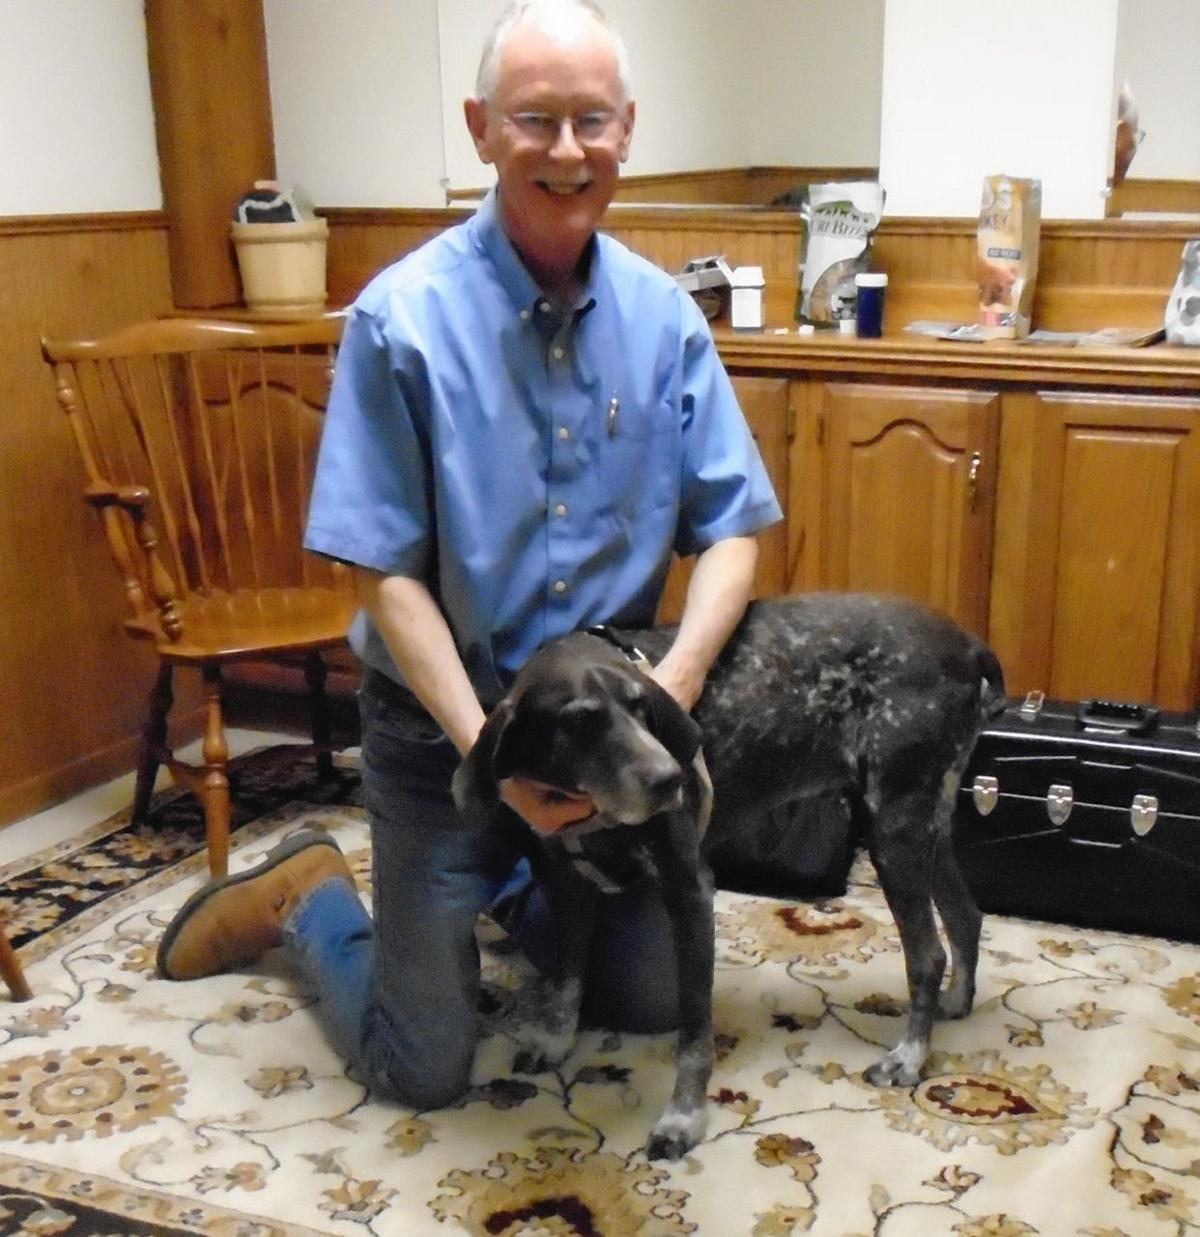 Veterinarian offers chiropractic care to keep cats and dogs hopping